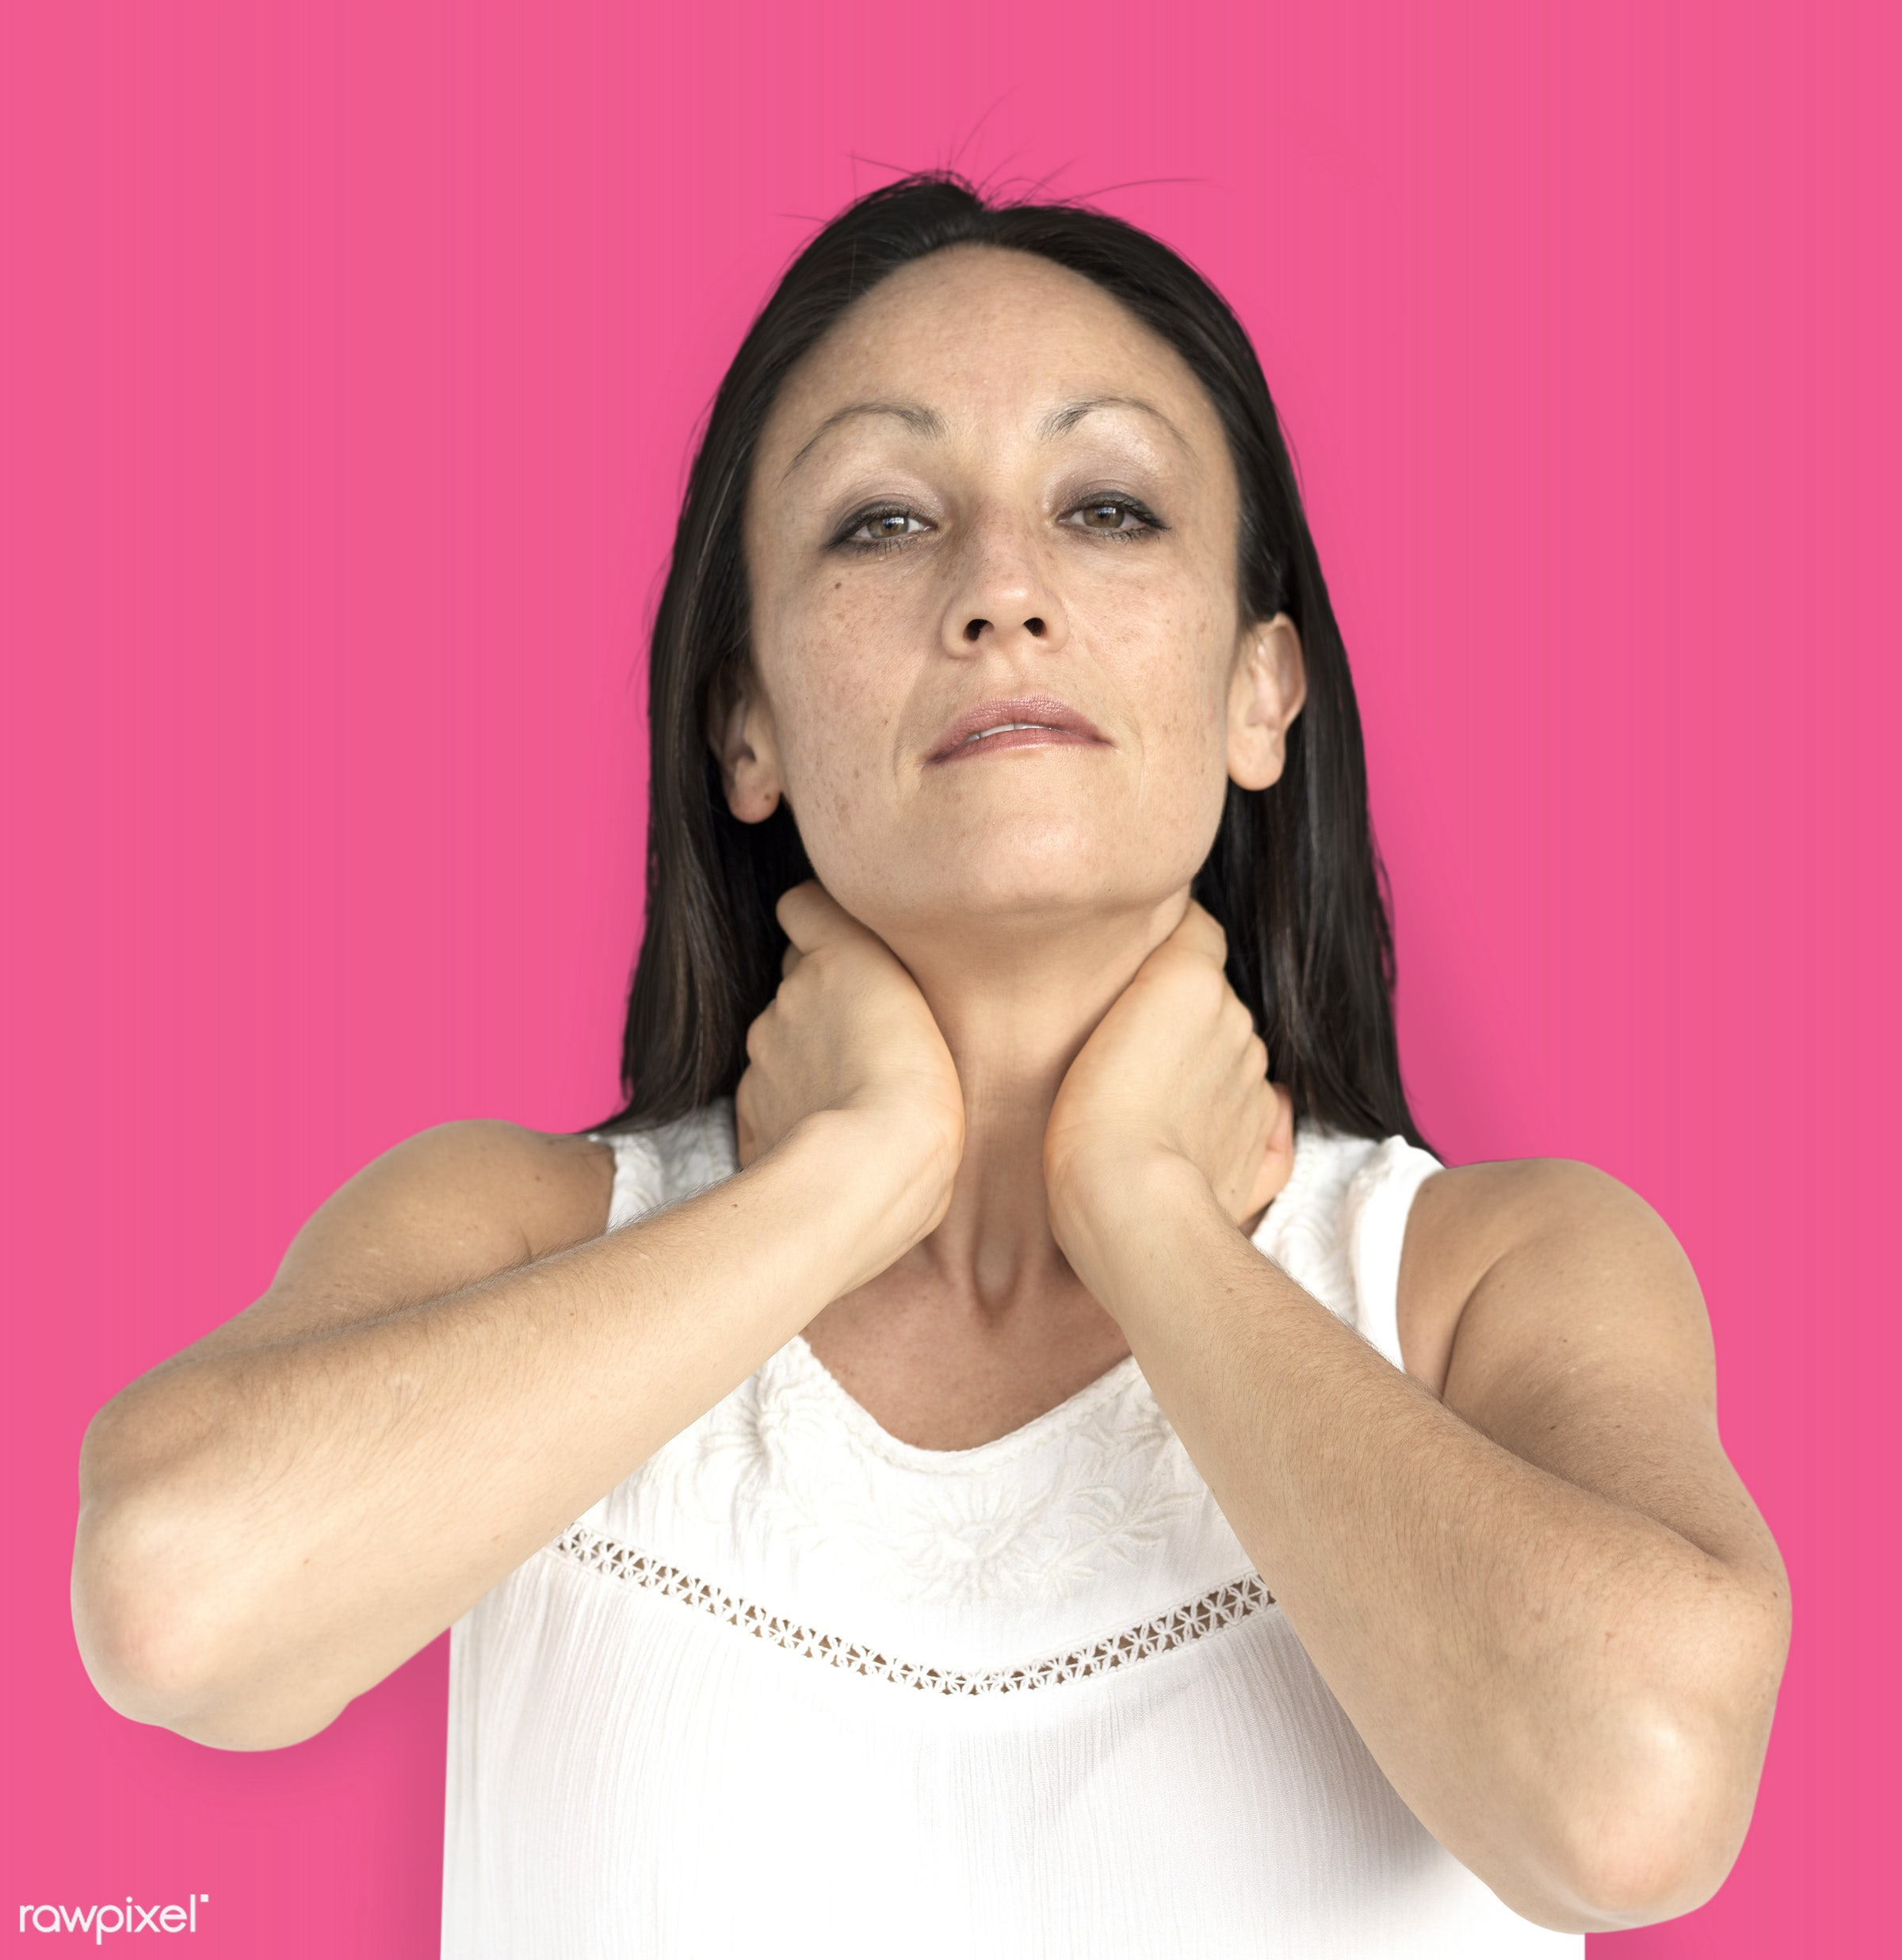 studio, model, person, neck pain, people, race, style, solo, woman, casual, lifestyle, pink, feminism, isolated, gesture,...